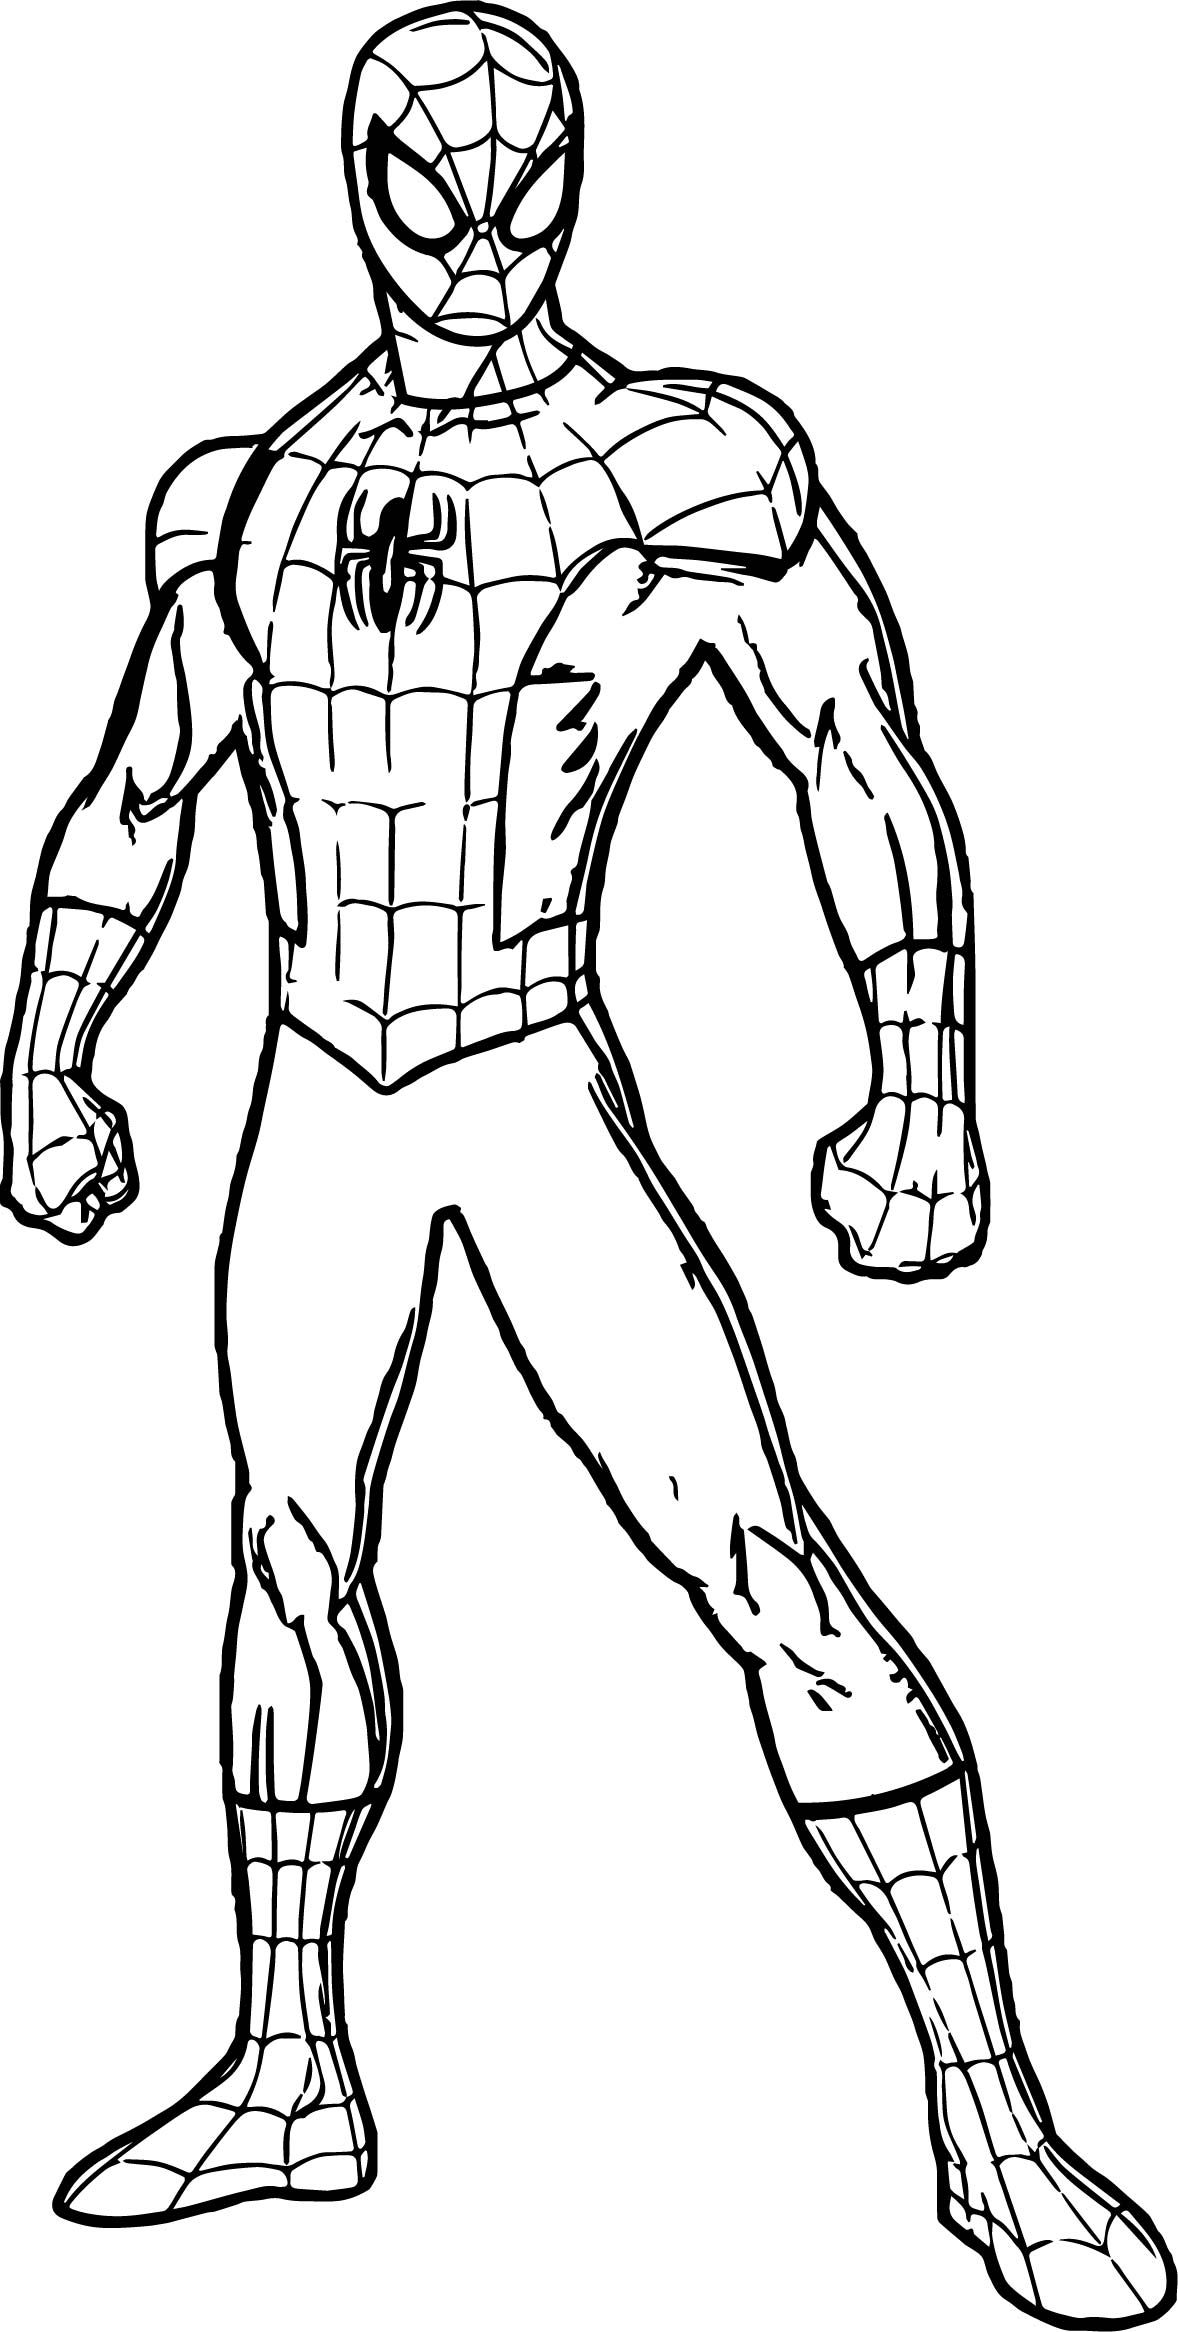 Spiderman Coloring Pages Printable Pdf